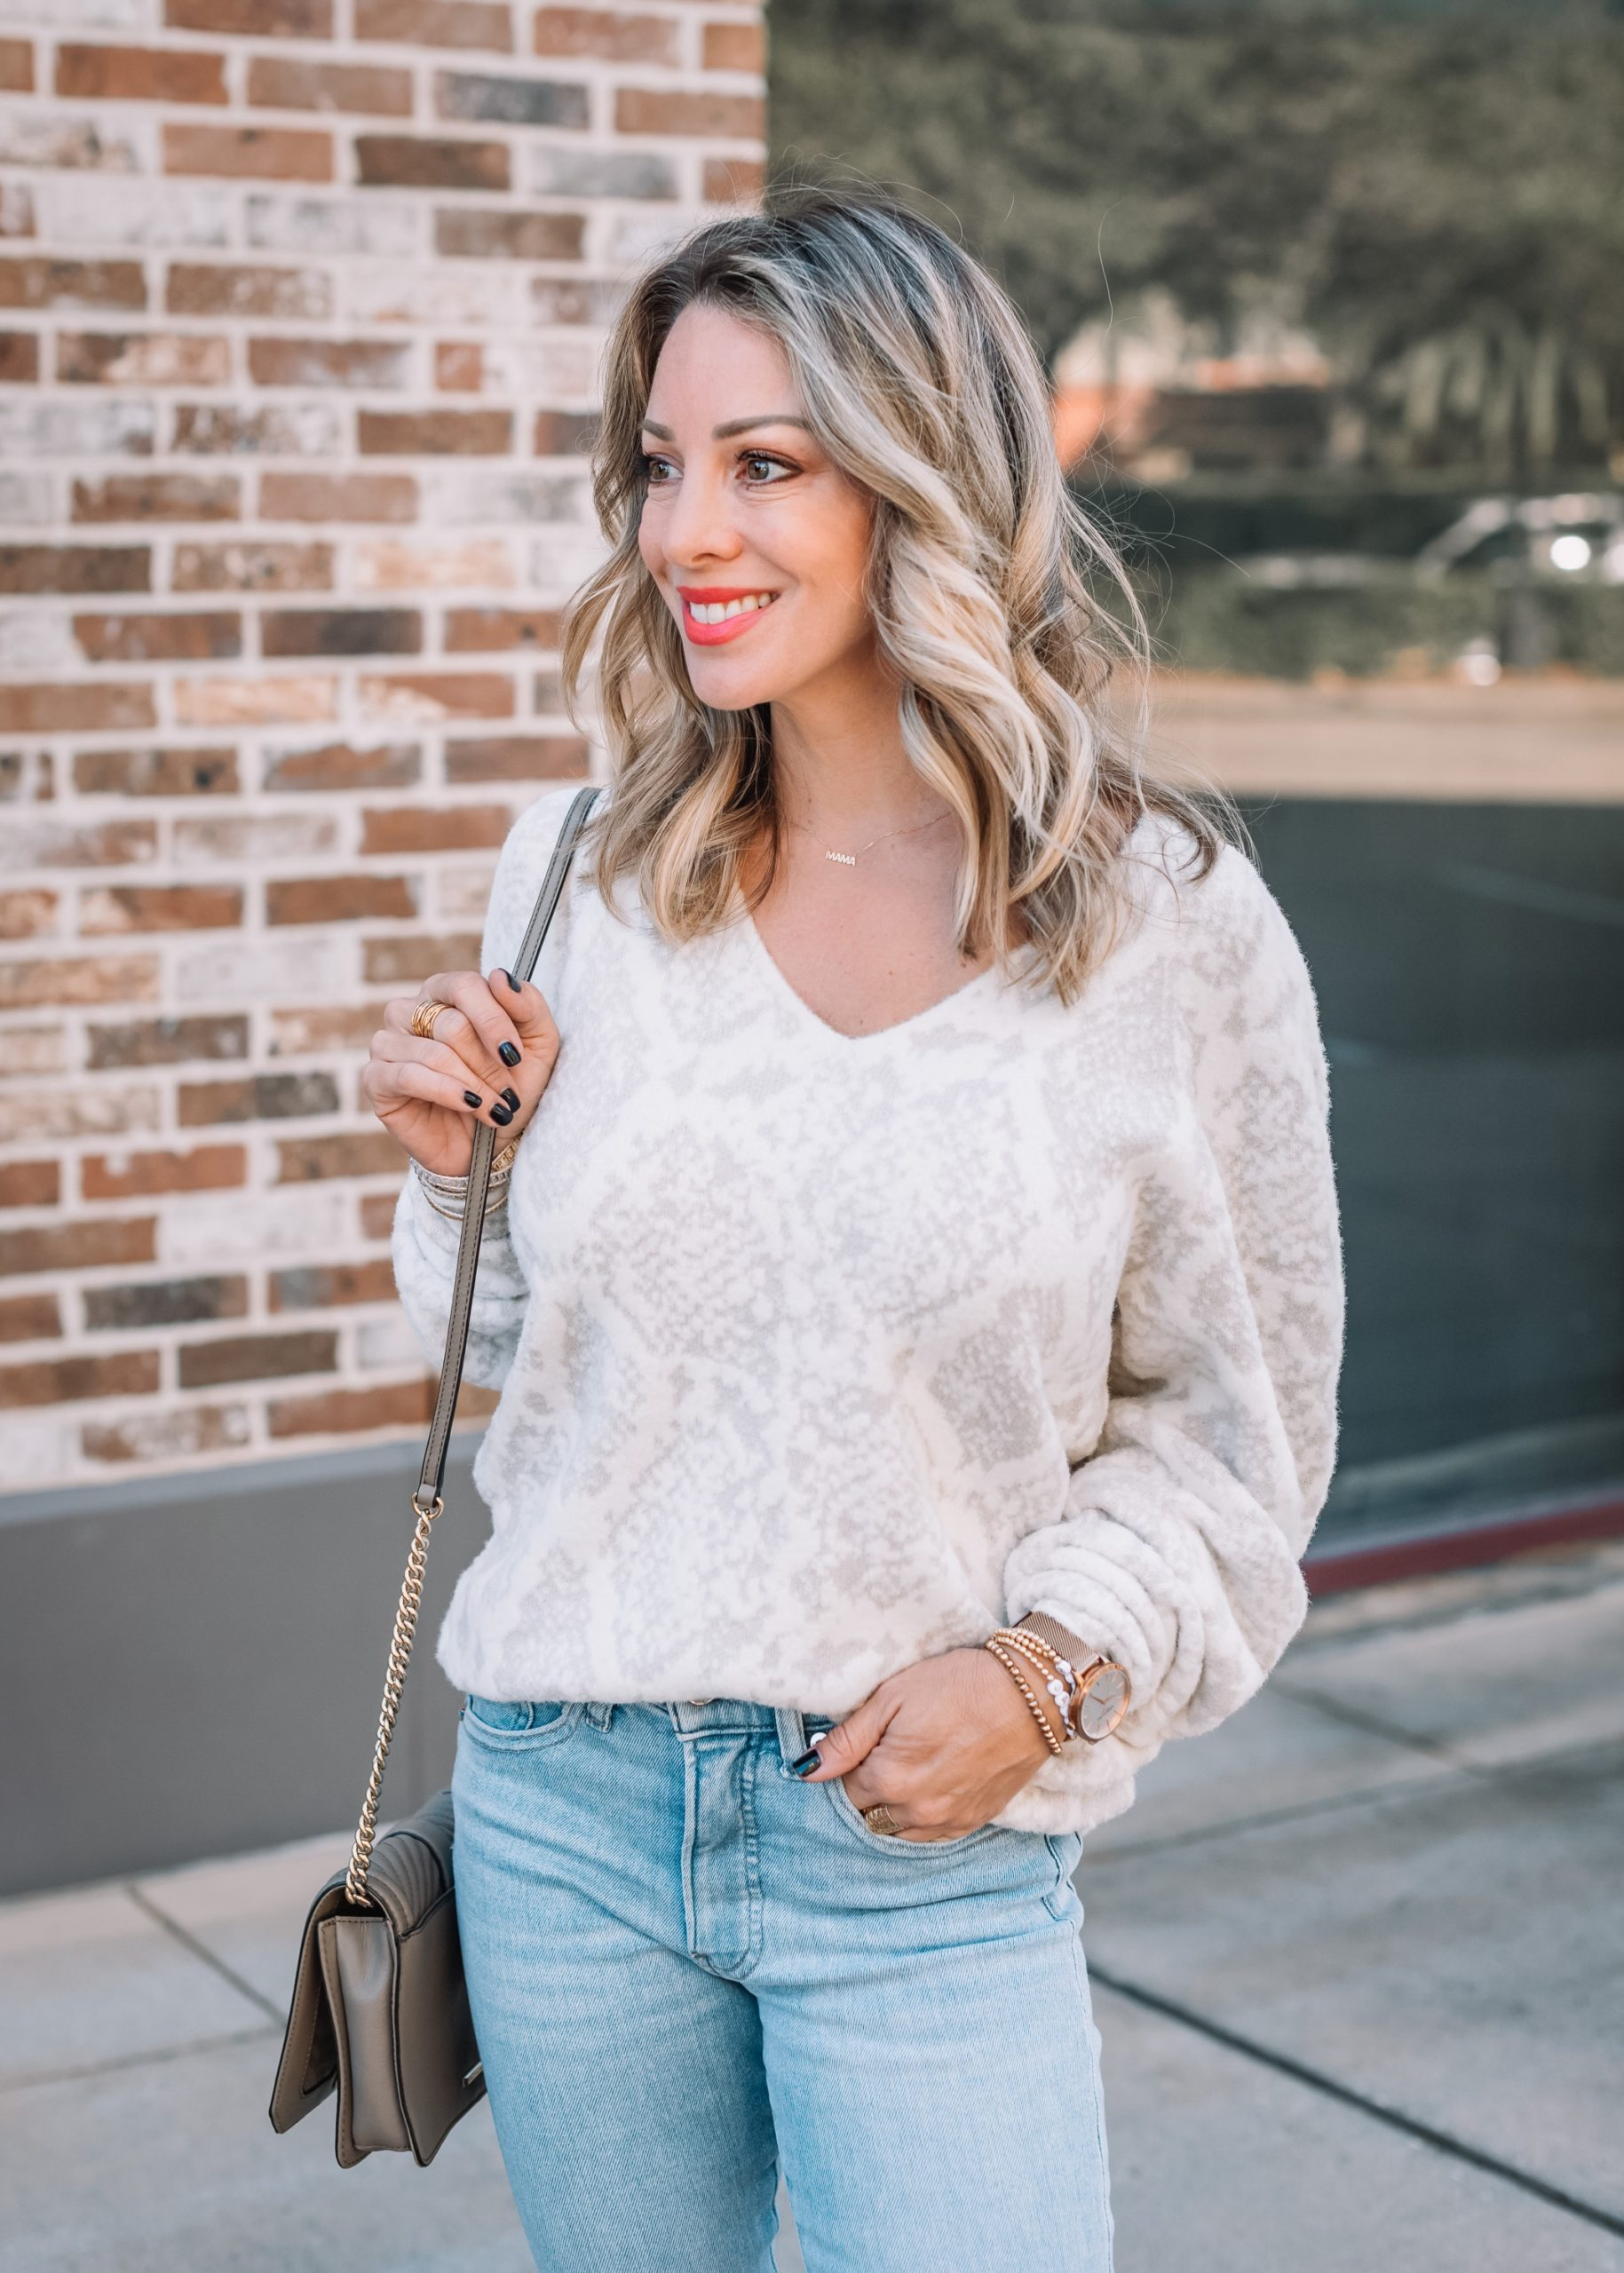 Express Fashion, Snakeskin Sweater, Jeans, Crossbody